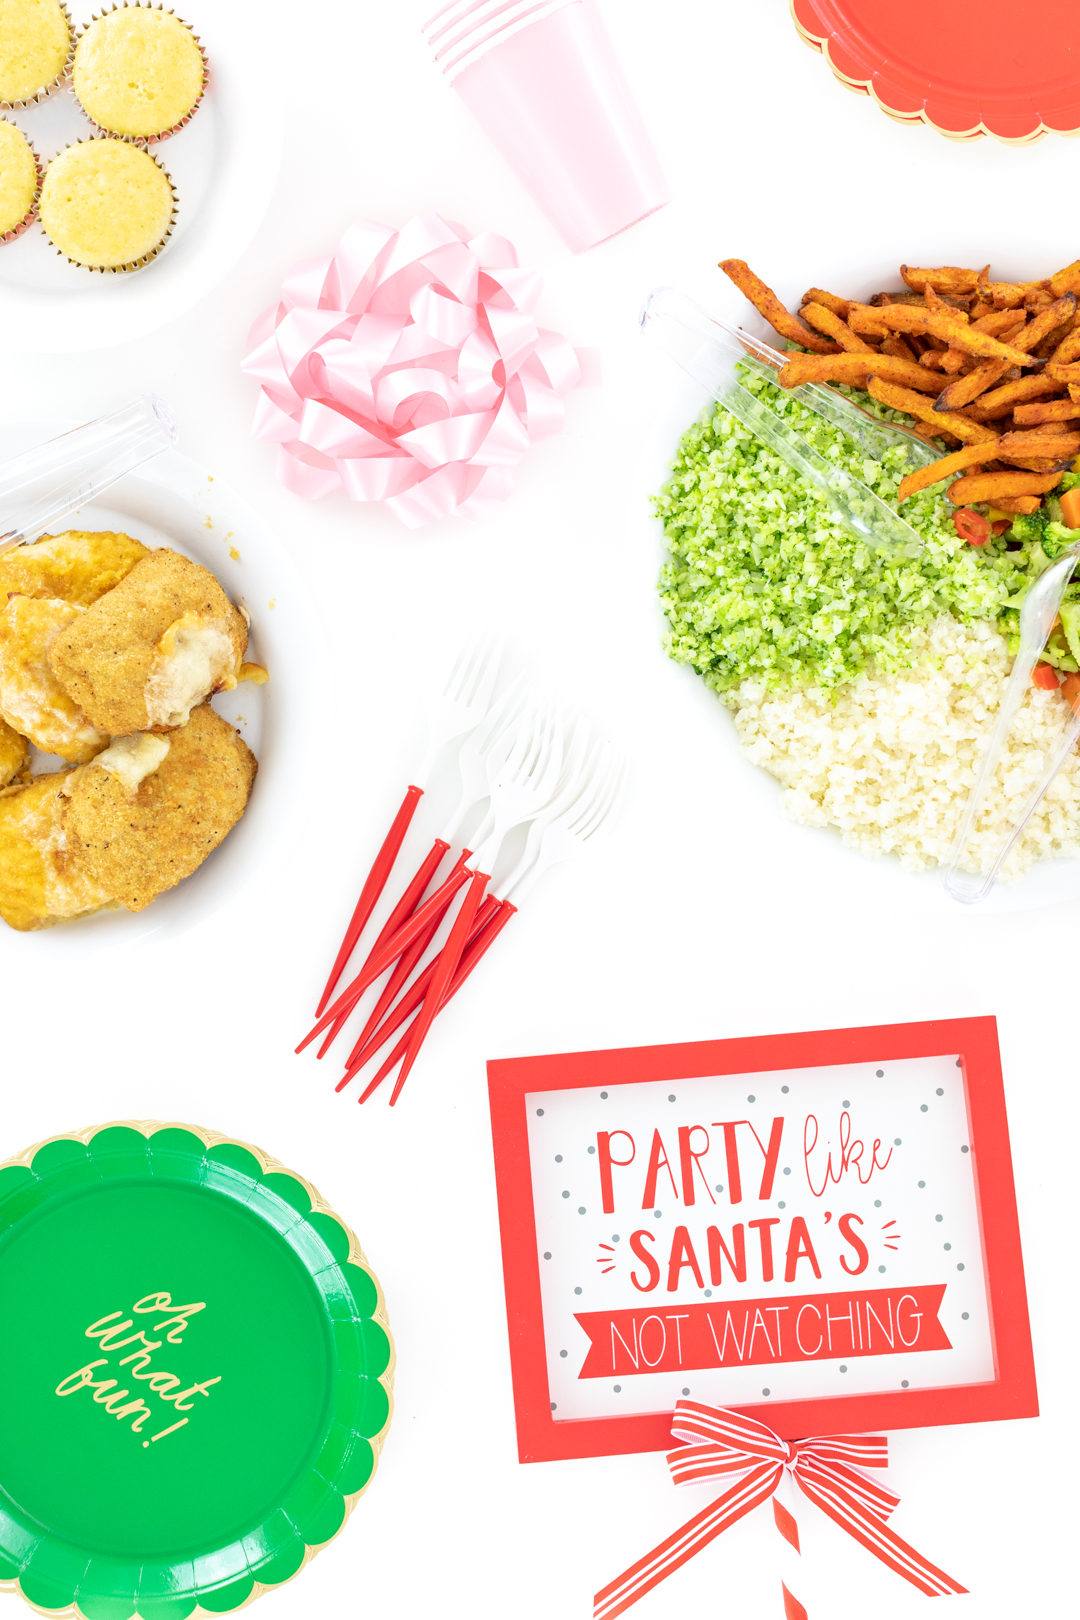 Food spread and Party Like Santa's Not Watching Sign